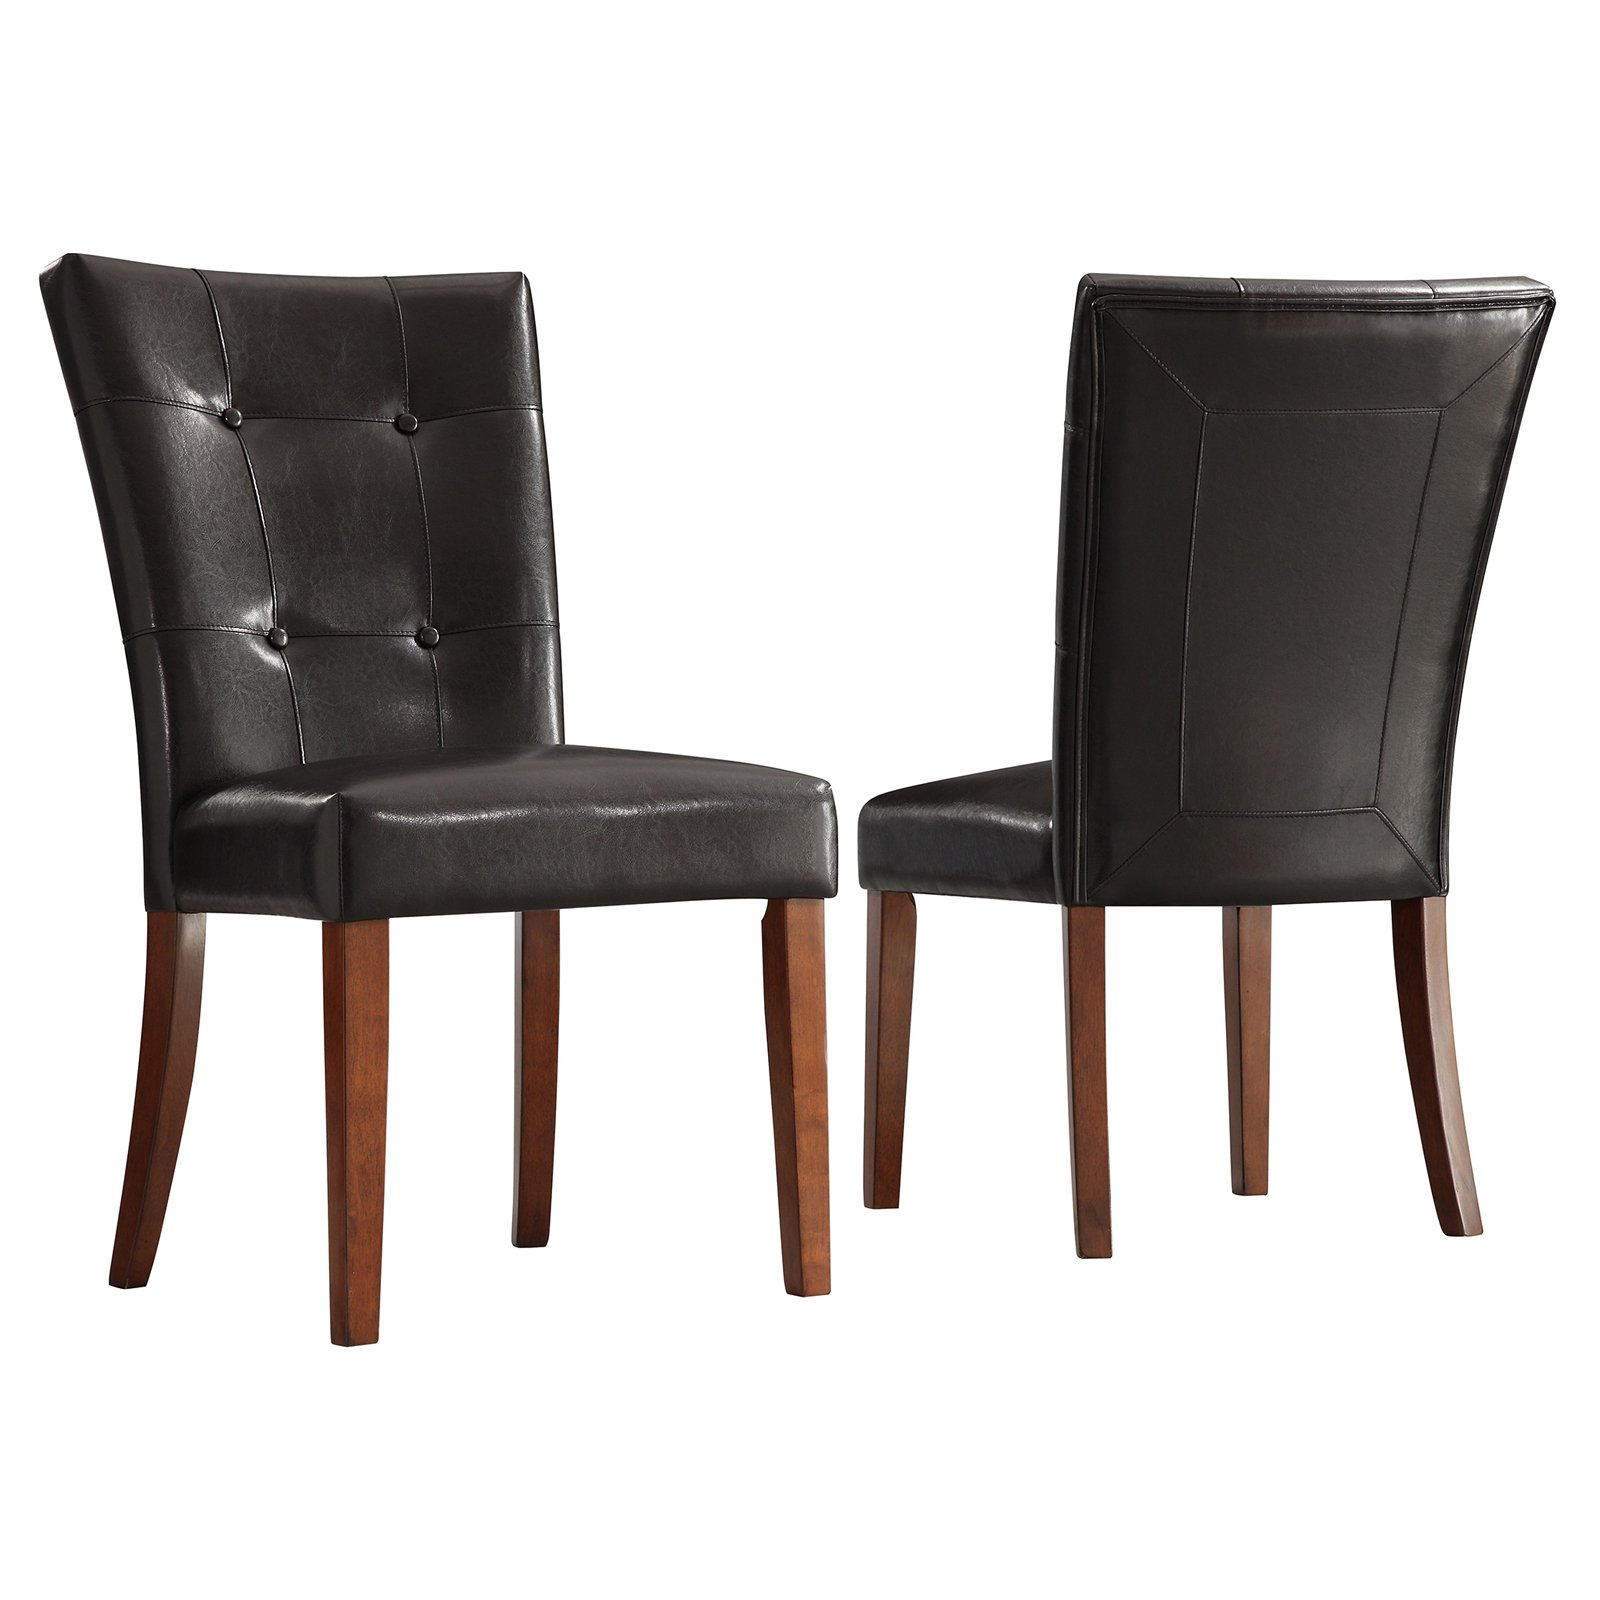 Parson Tufted Vinyl Chairs - Set of 2